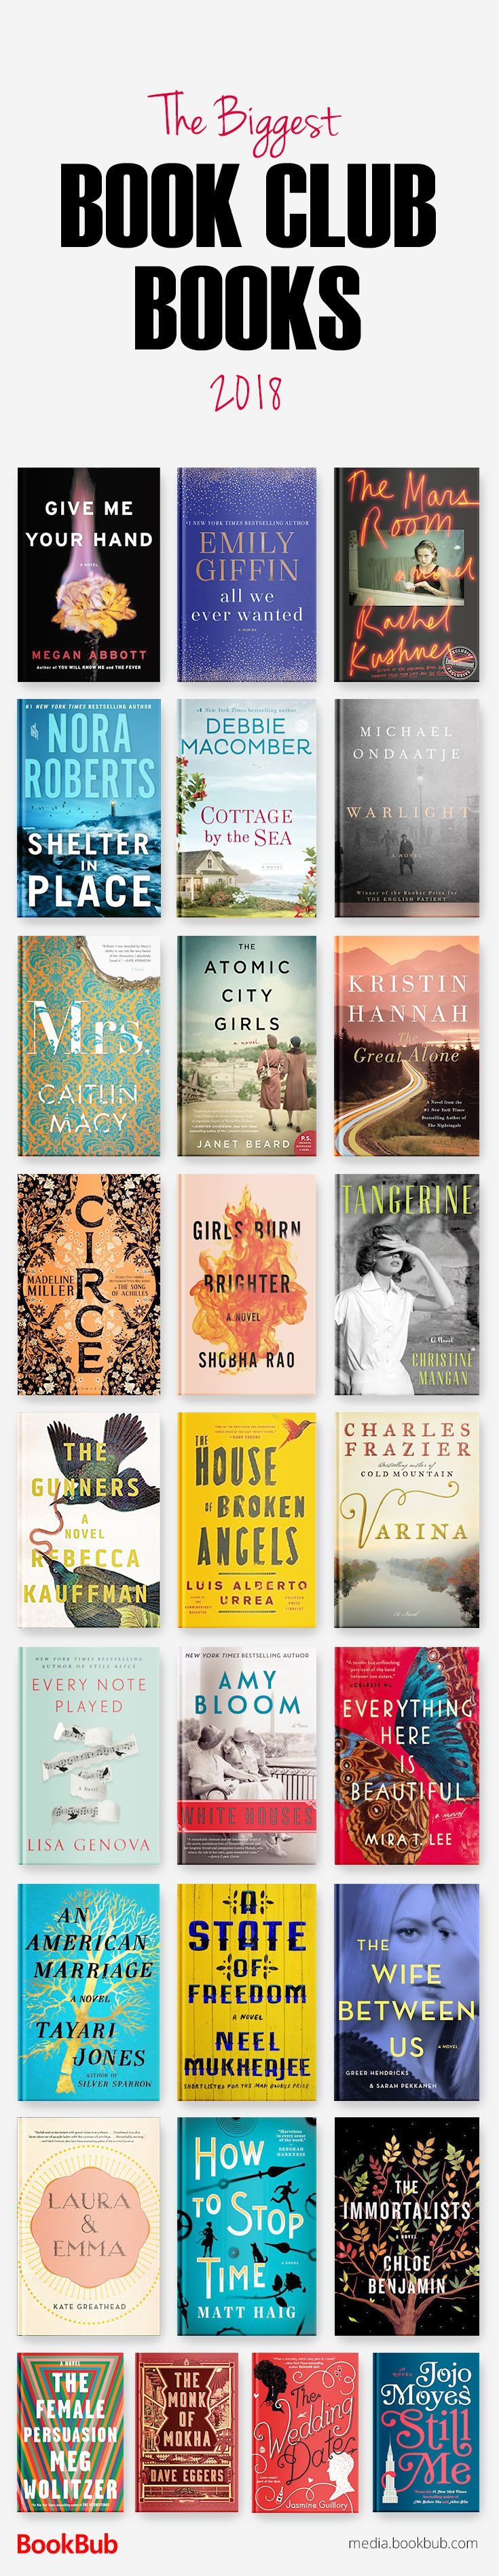 30 Book Club Books We Can't Wait to Read This Year